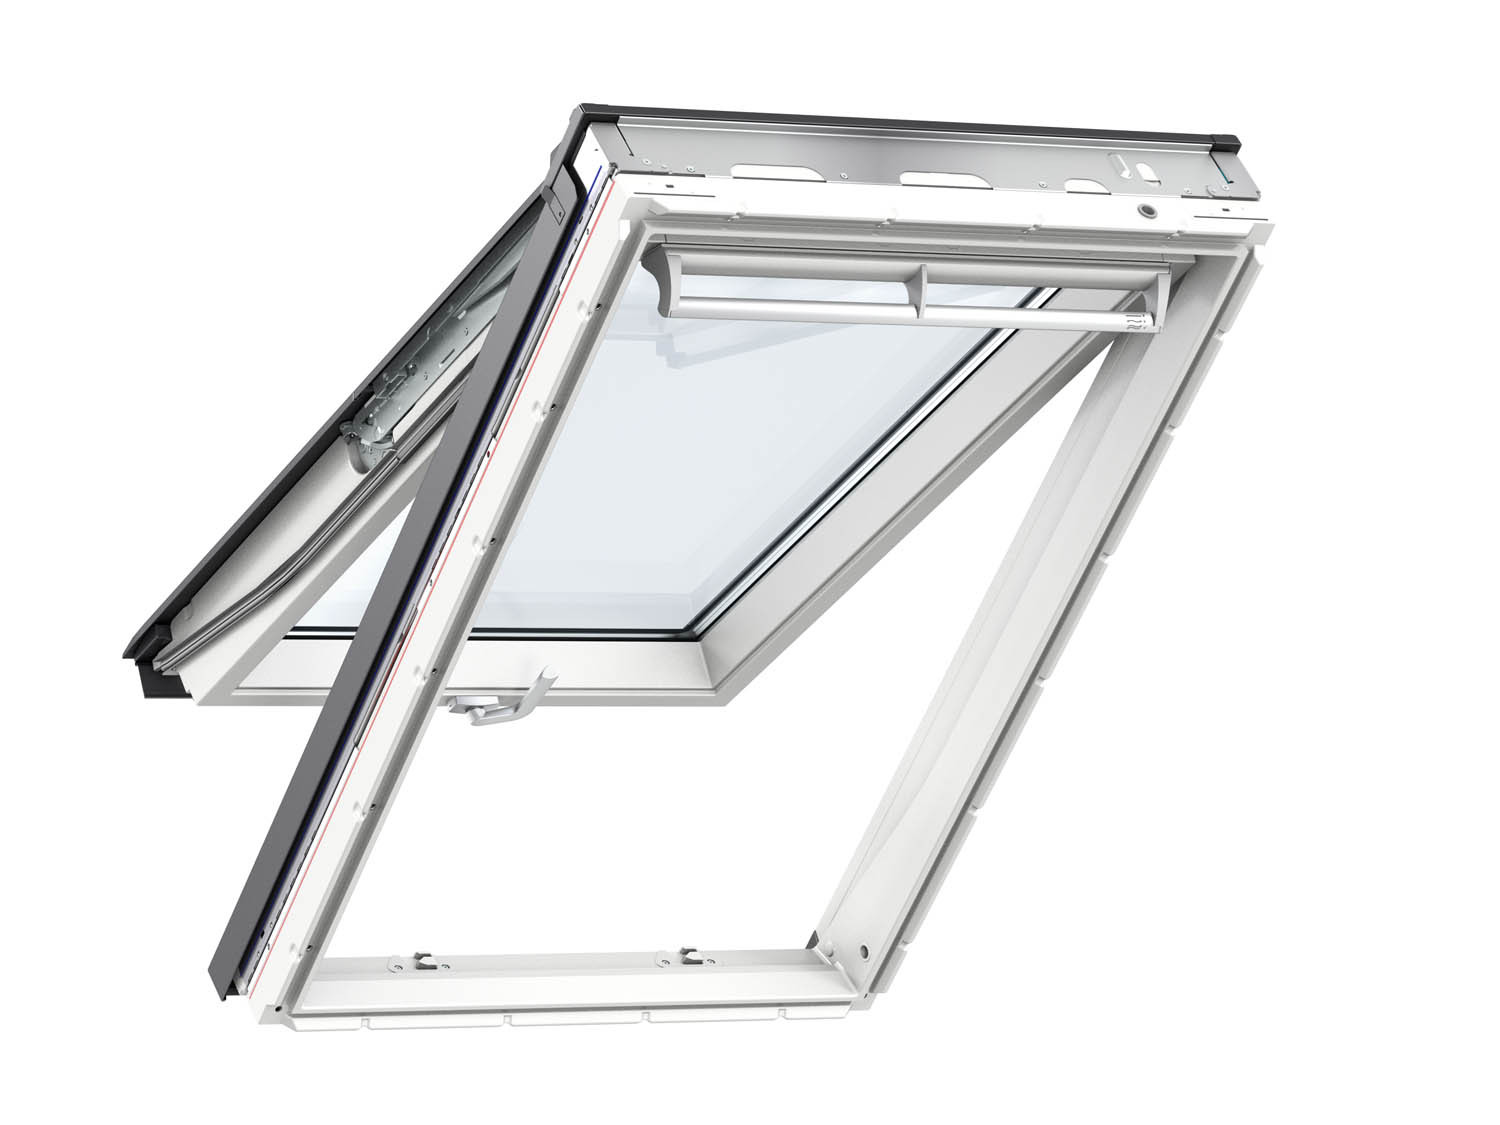 Velux 550mm x 1.18m Top-Hung White Roof Window GPL2070 CK06